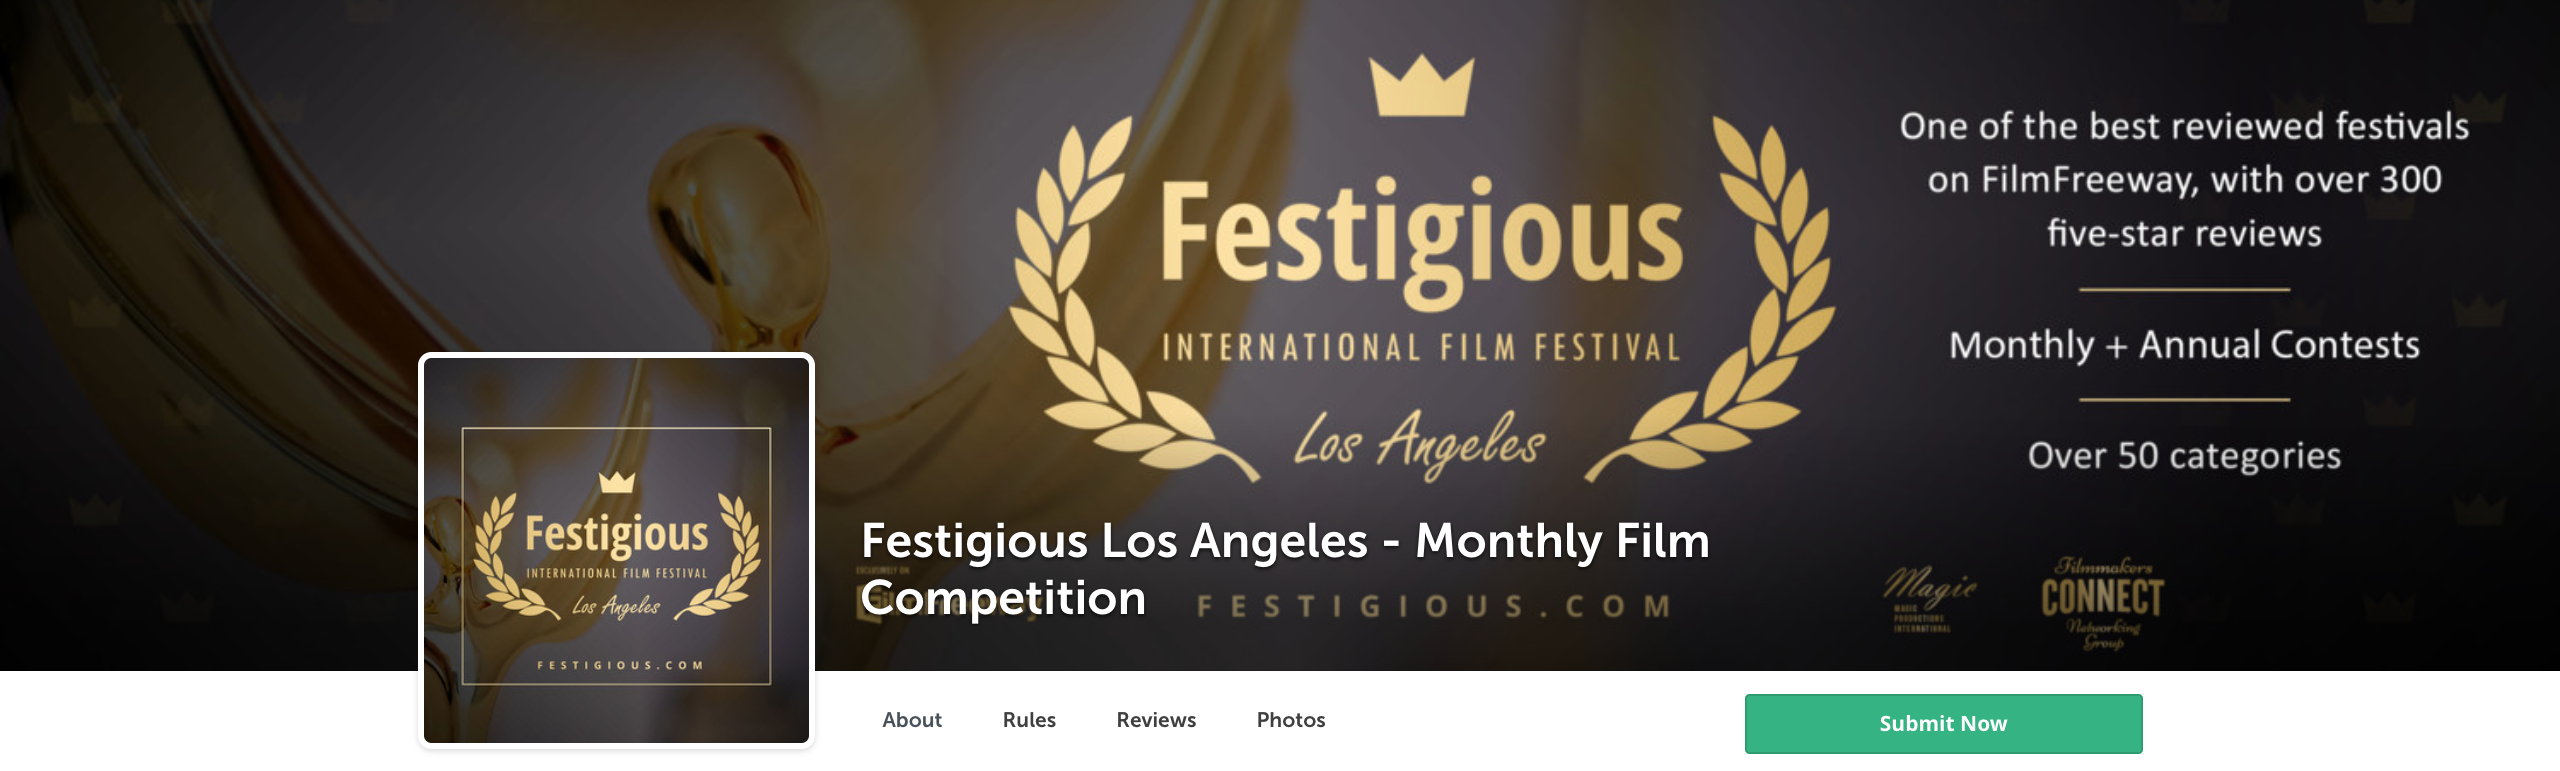 Festigious Los Angeles